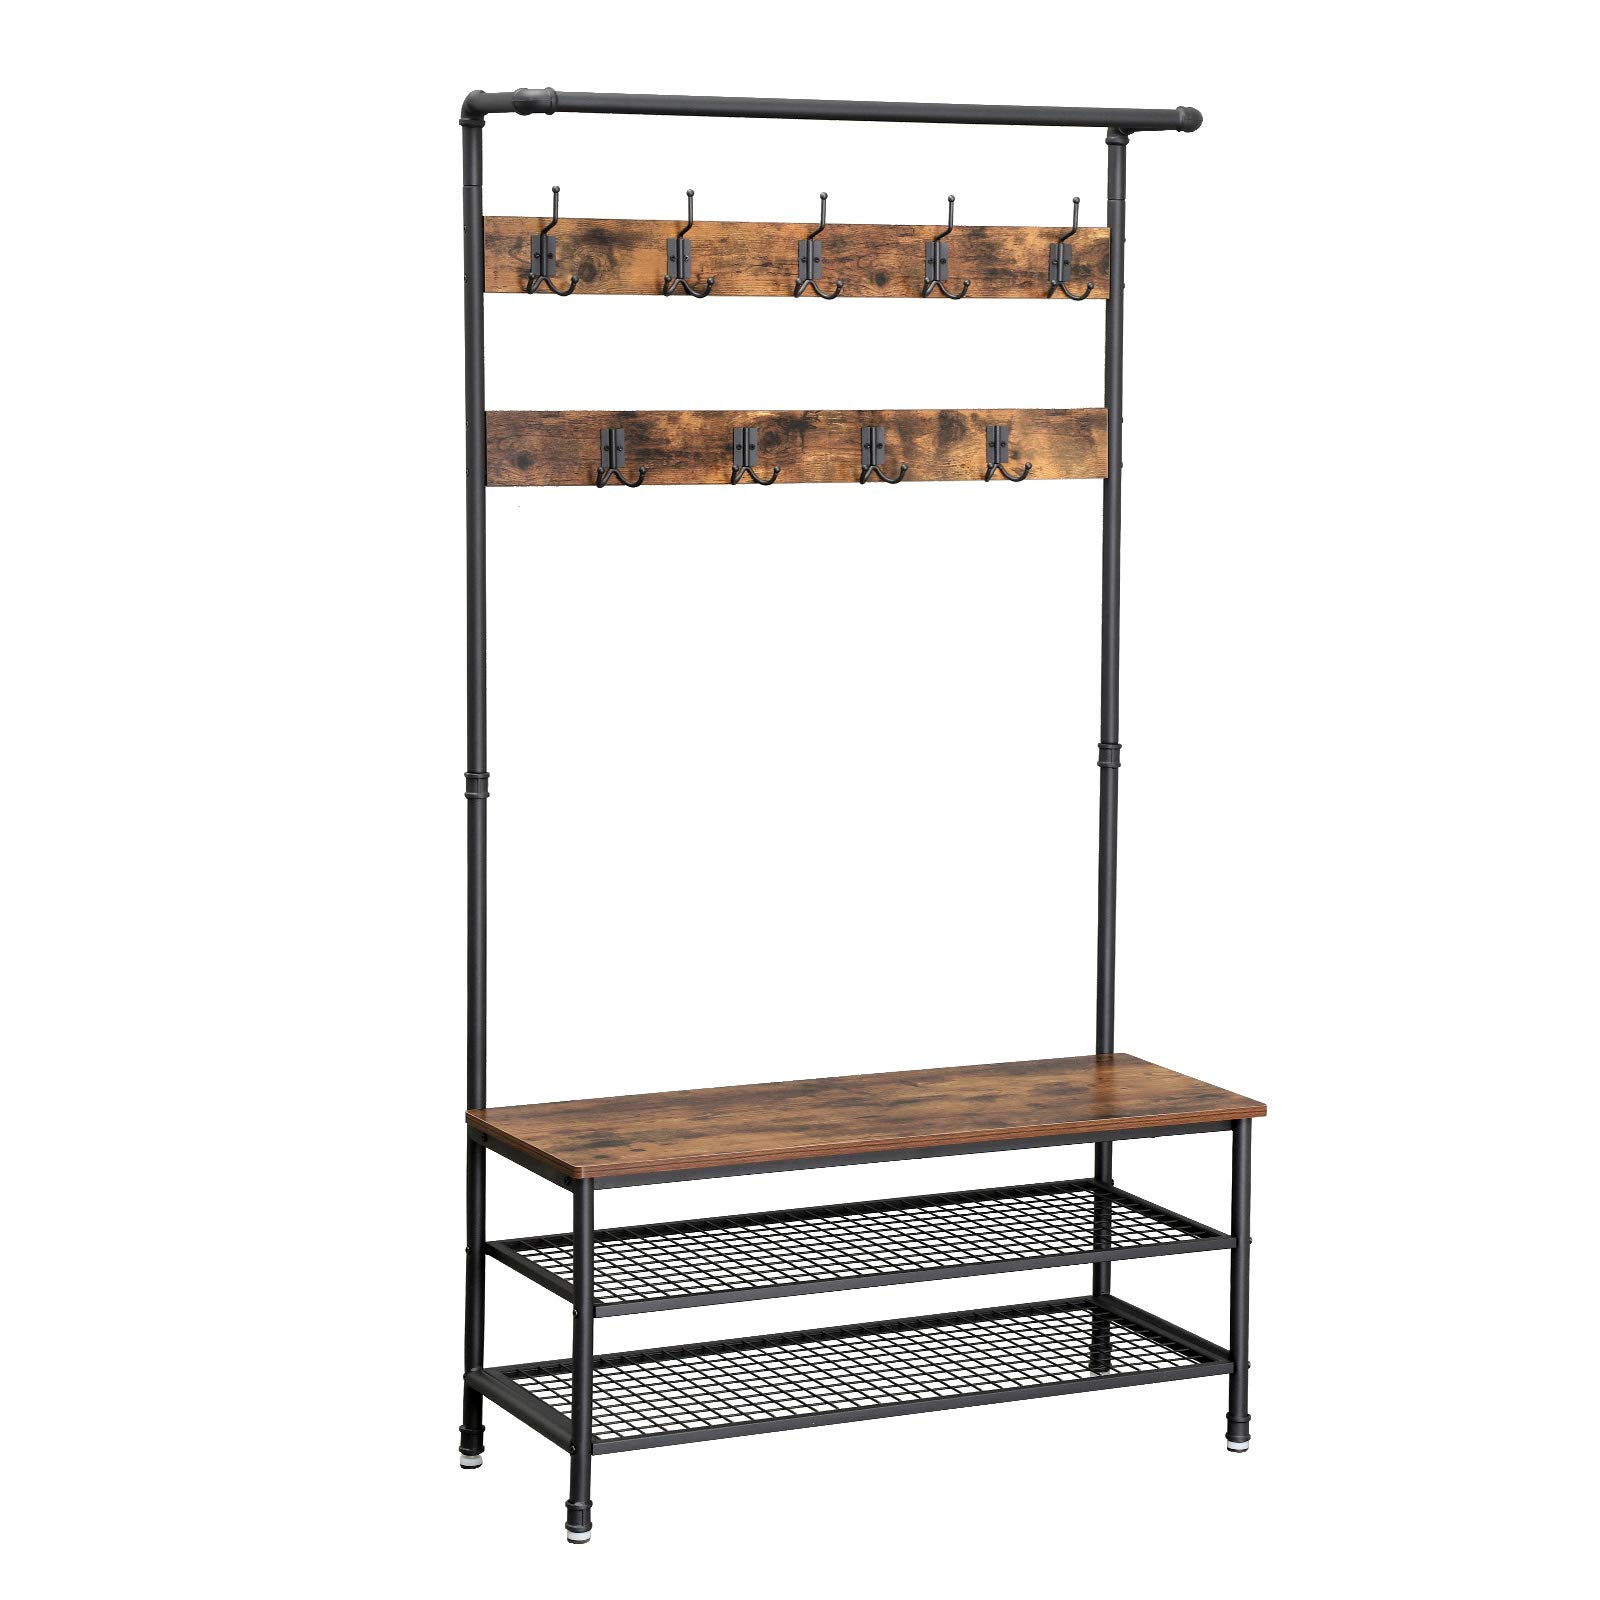 VASAGLE Industrial Coat Rack Storage Bench, Pipe Style Hall Tree with 9 Hooks, Multifunctional Sturdy Iron Frame Large Size UHSR47BX by VASAGLE